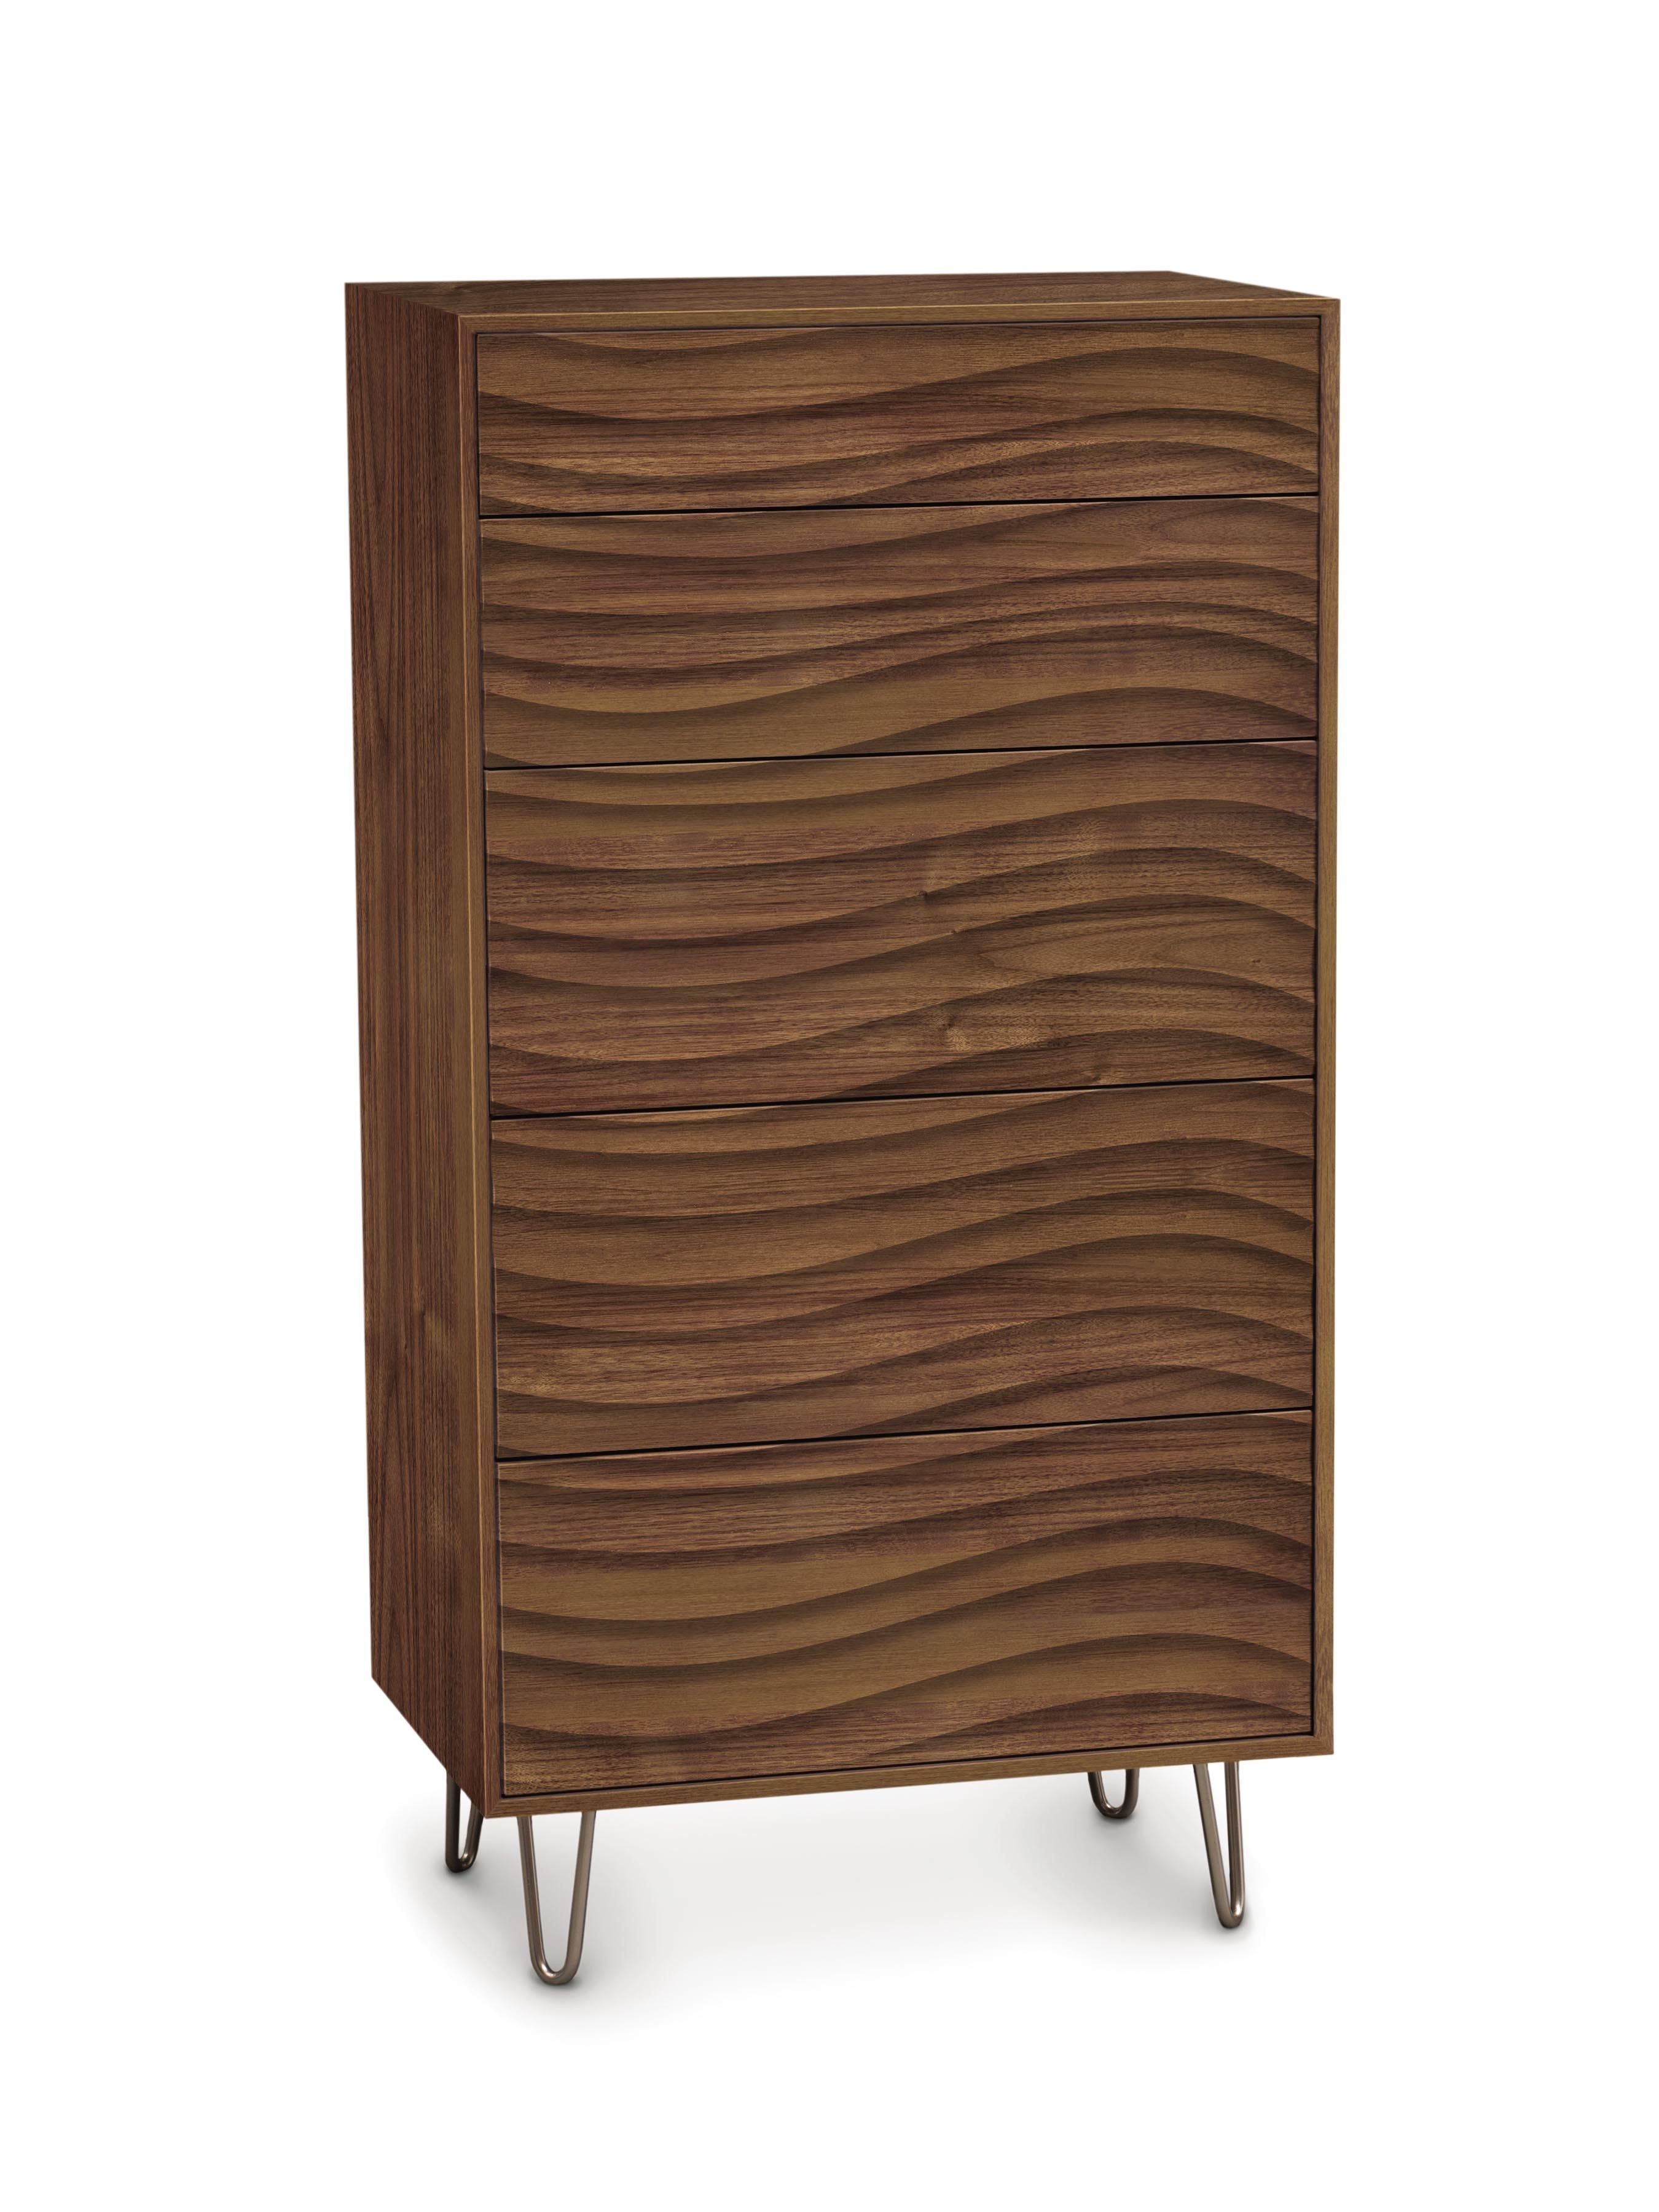 Wave cases feature push to open drawers and metal or wood legs the